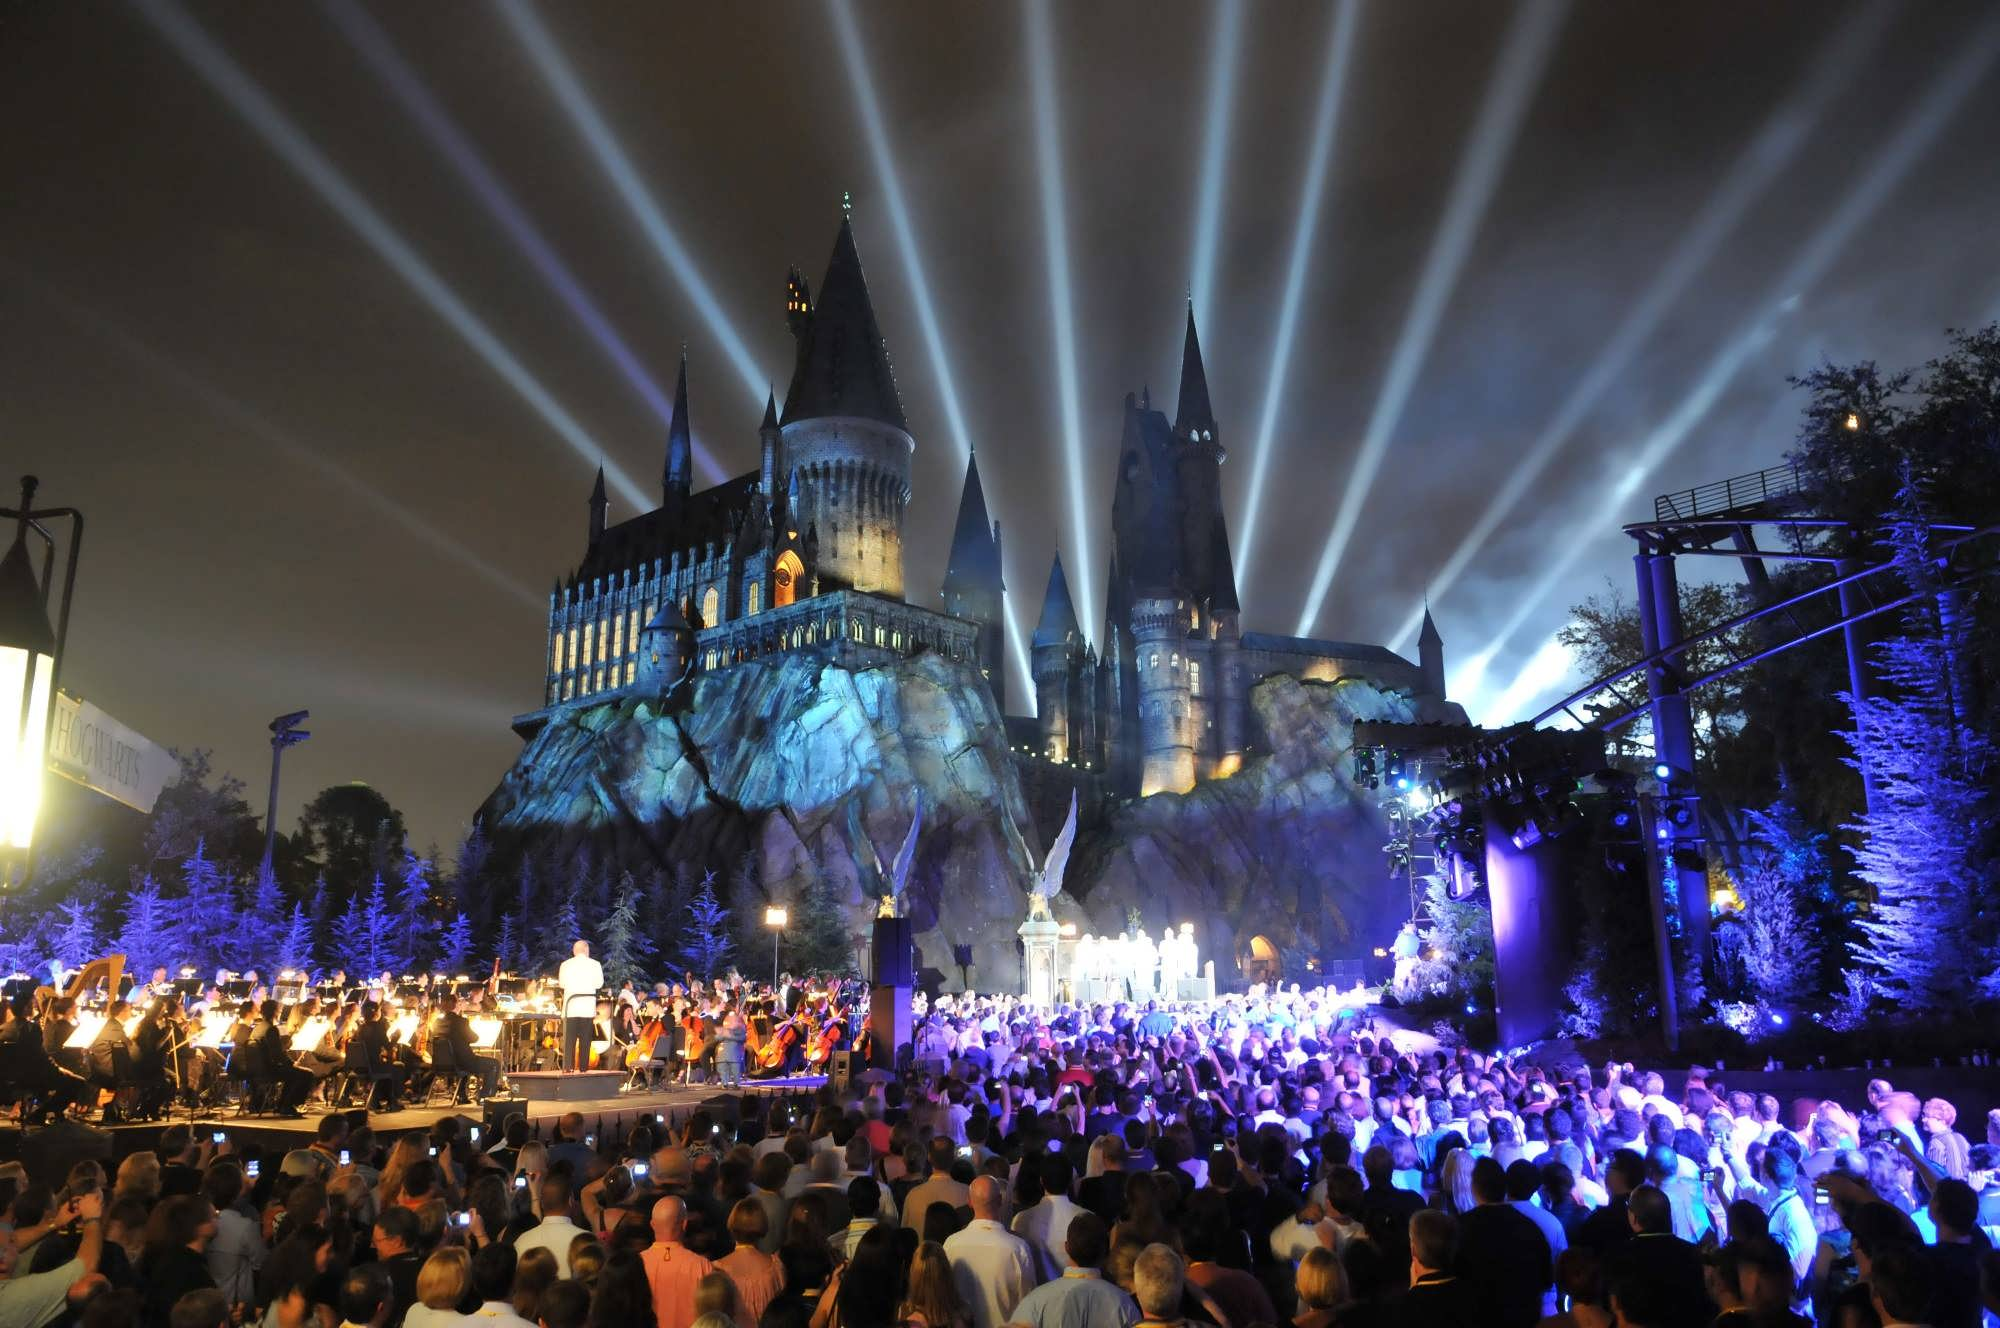 wizarding-world-of-harry-potter-grand-opening-gala-oi.jpg (2000×1328)